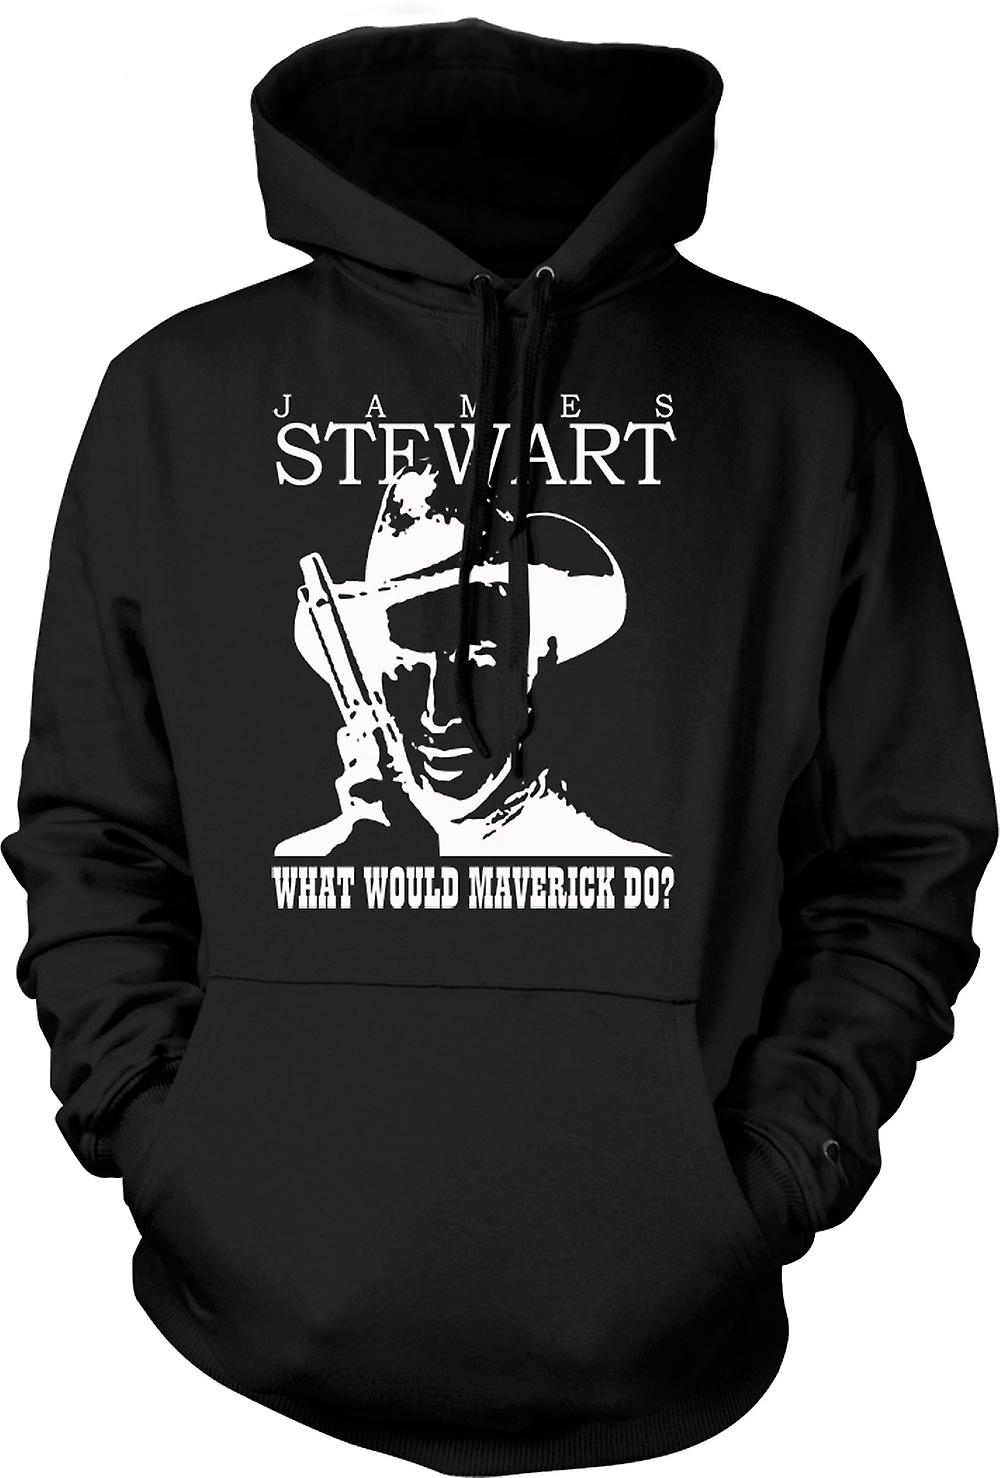 Mens hettegenser - James Stewart - Maverick Cowboy